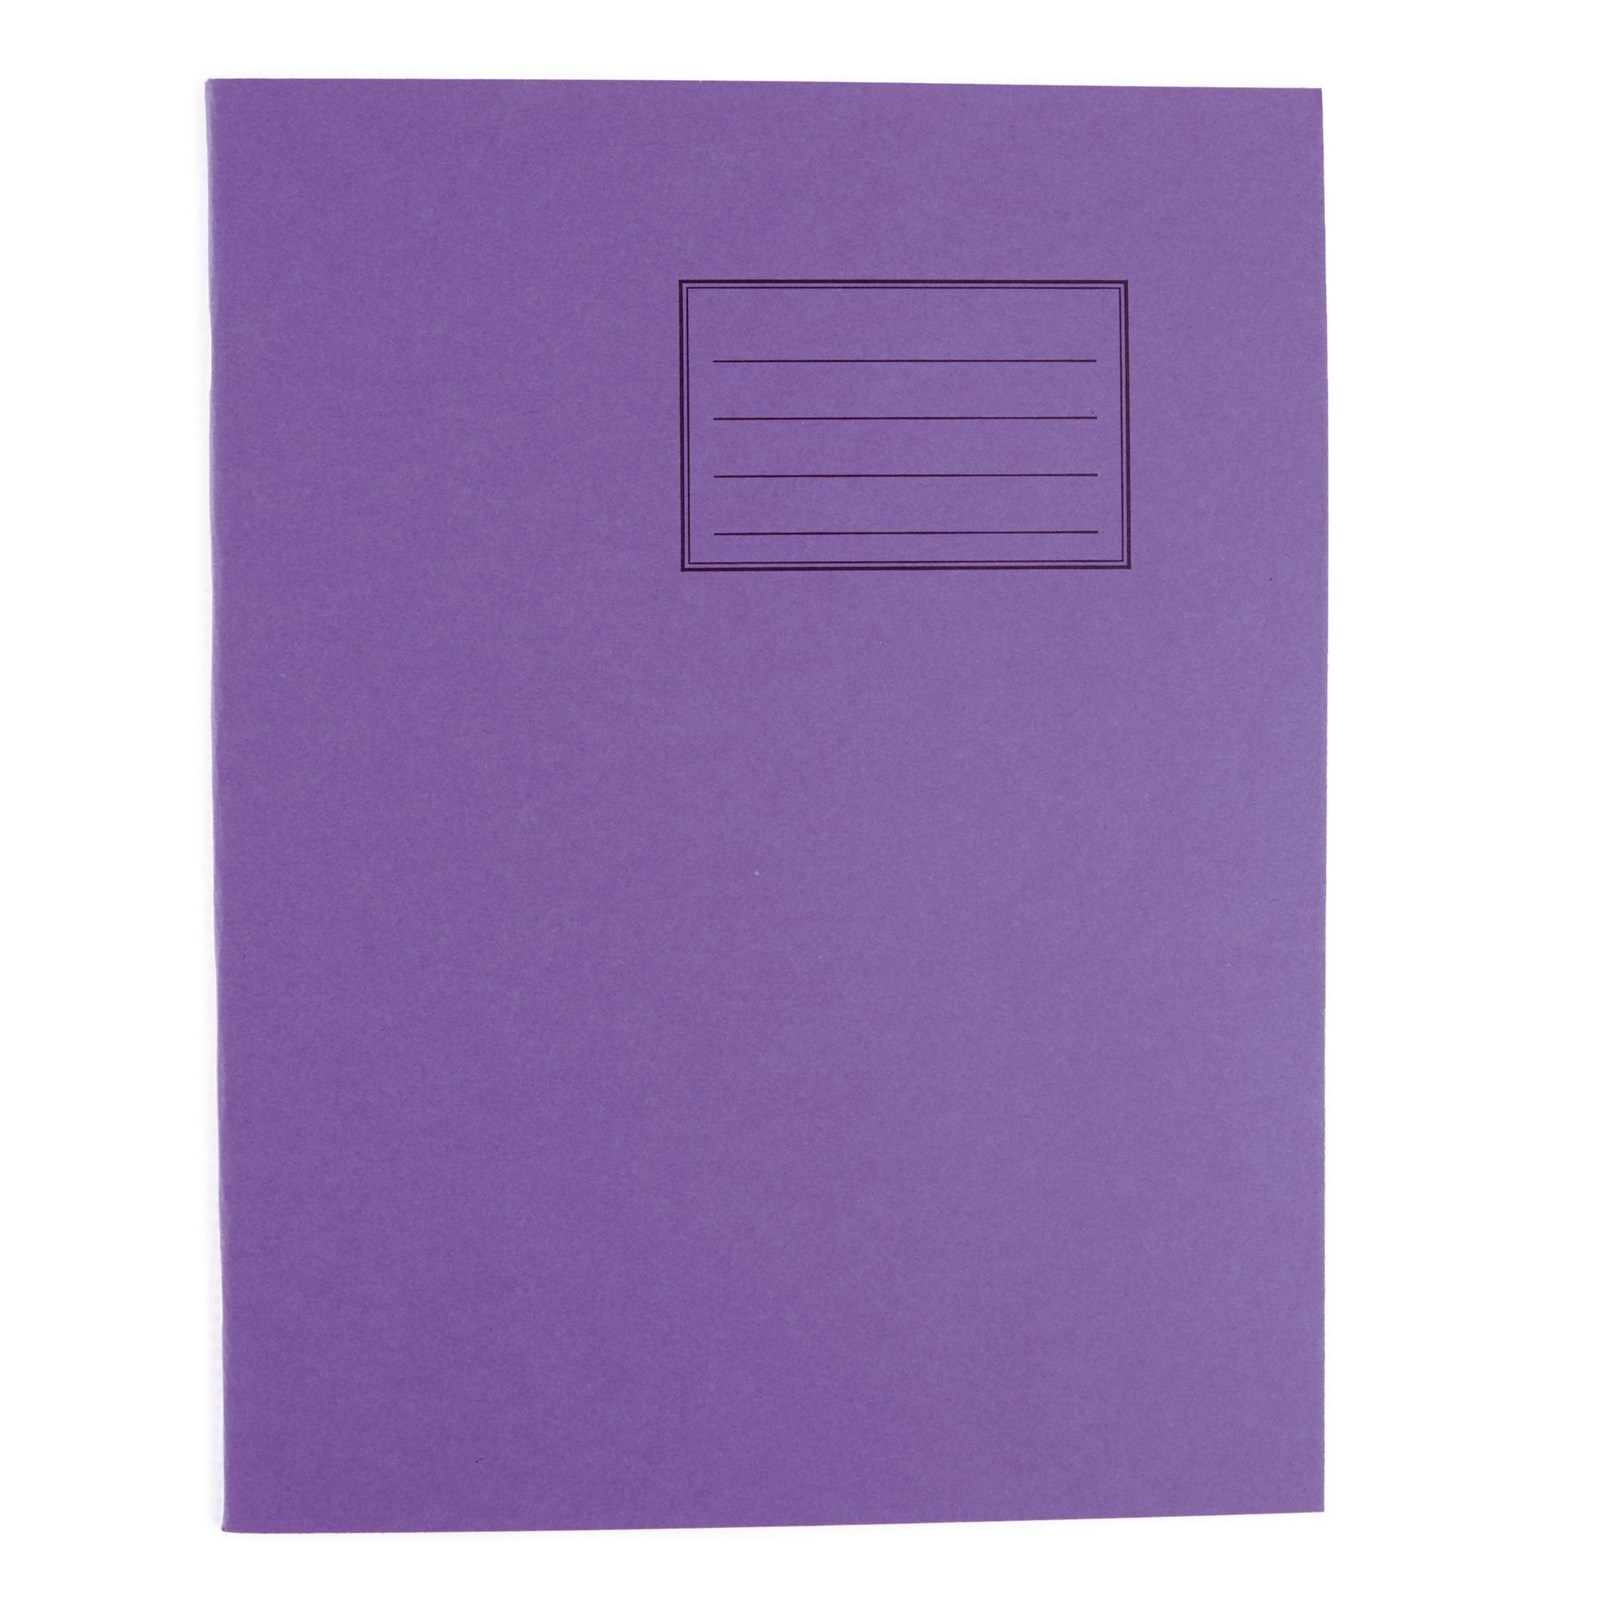 Book Cover Drawing Exercises : Vivid purple a classmates exercise book page mm